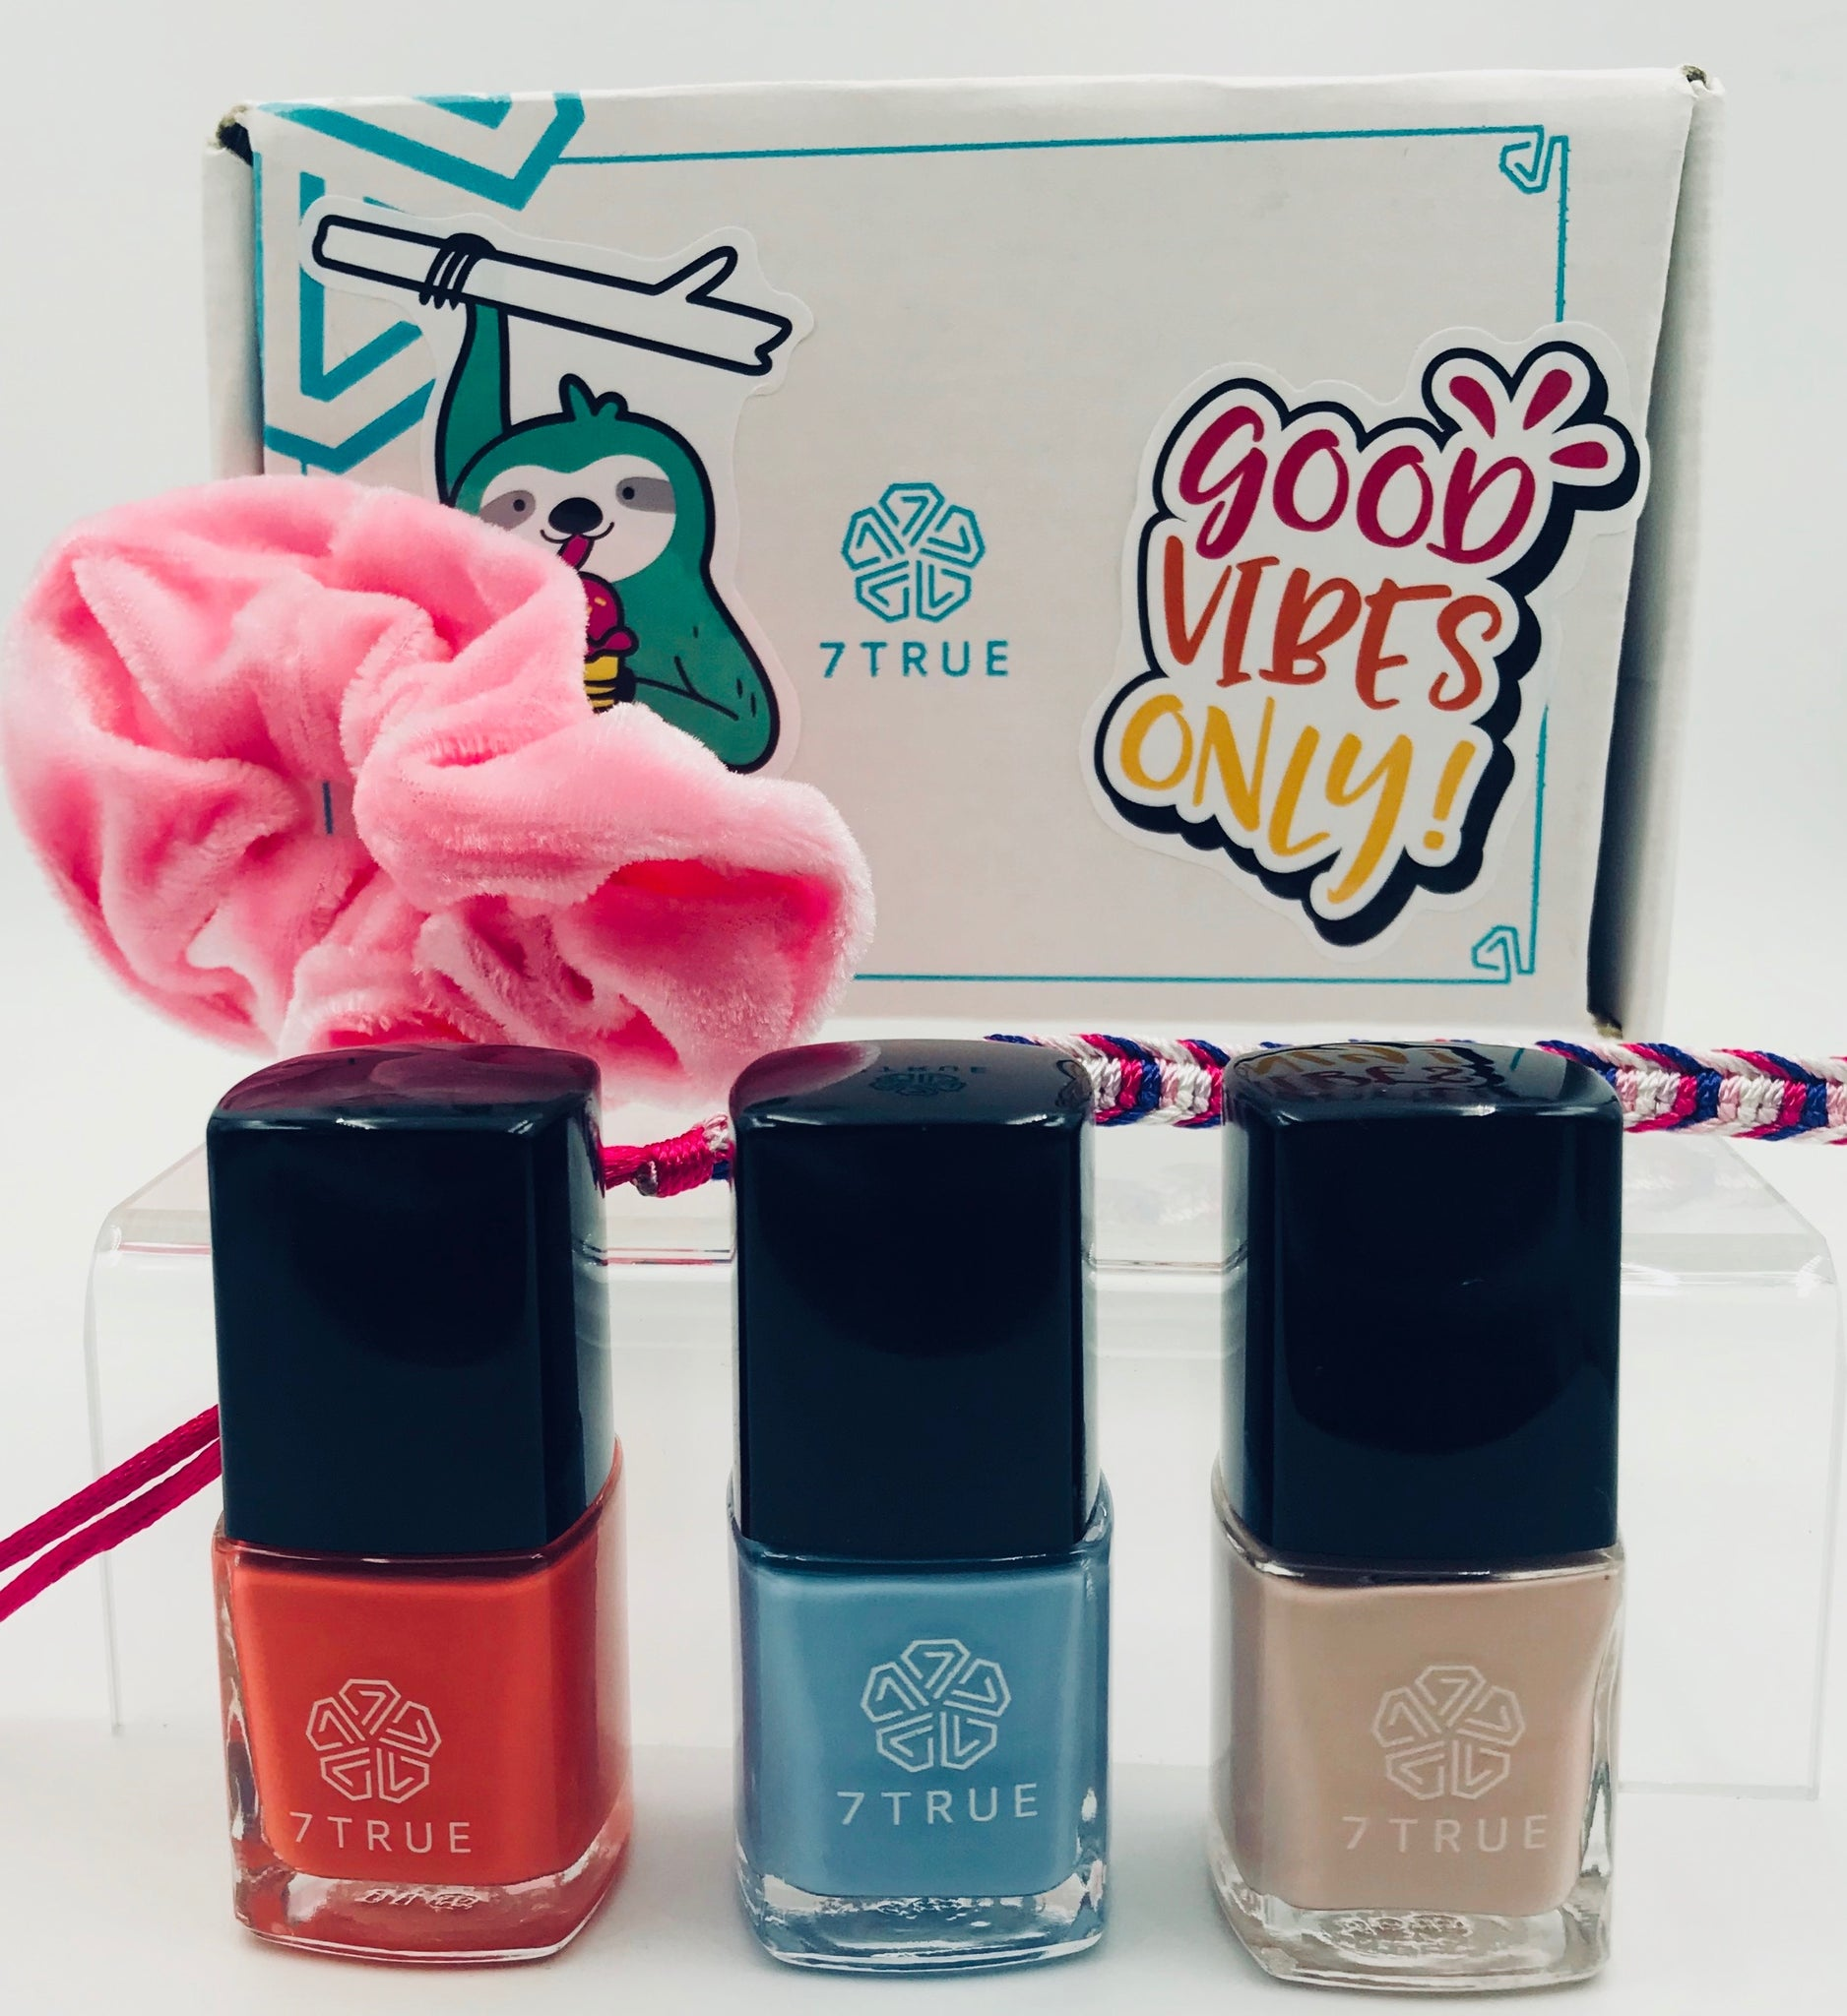 7TRUE Good Vibes Box